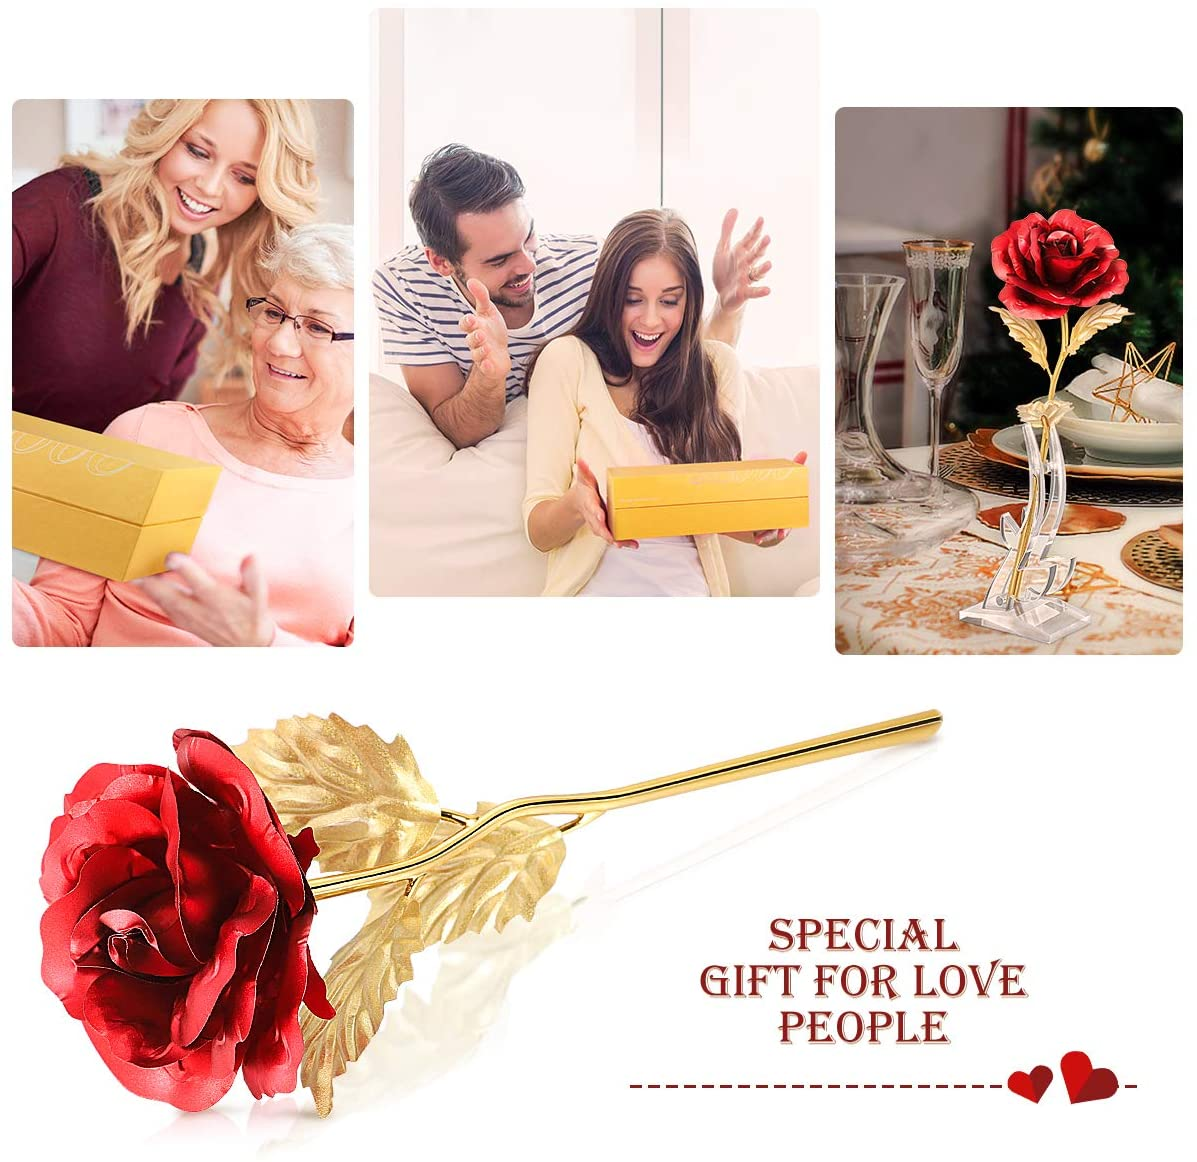 24k Gold Rose with Stable Bracket, Artificial Gold Rose Flower with Elegant Gift Box and Card